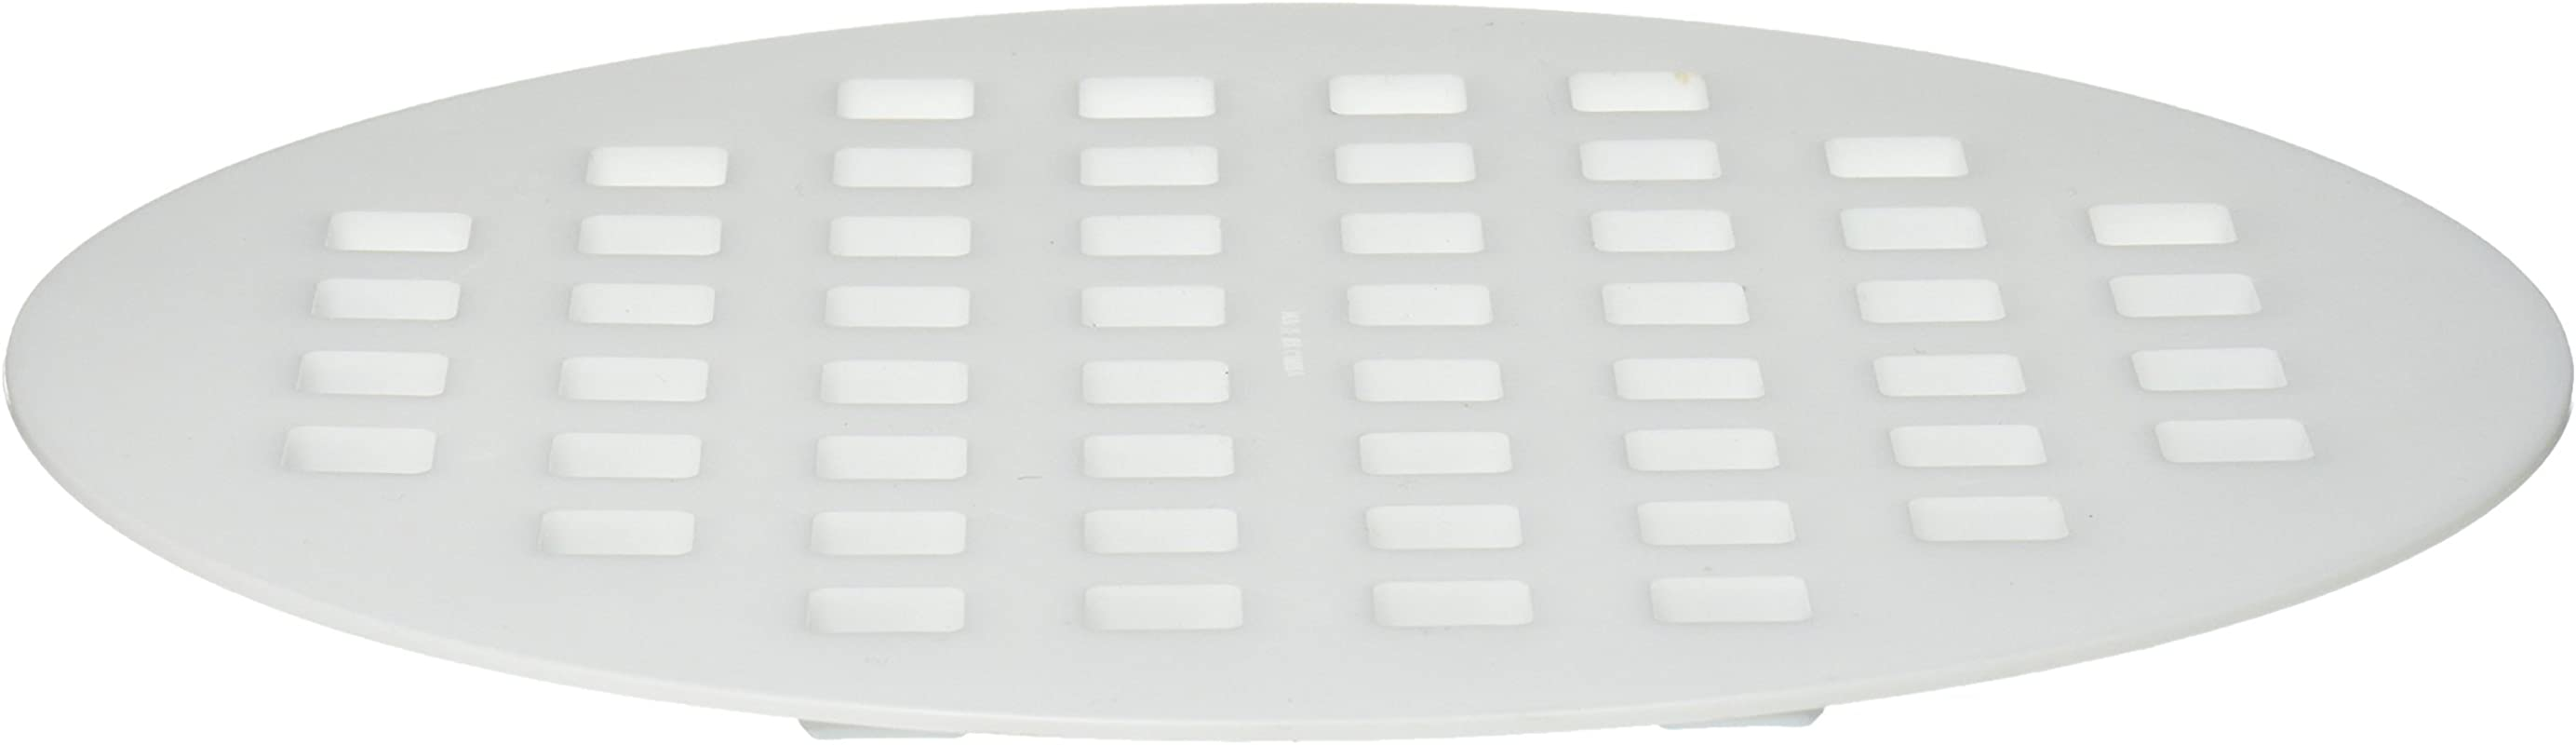 Norpro 3258 Lattice Pie Top Cutter 10 Inch White